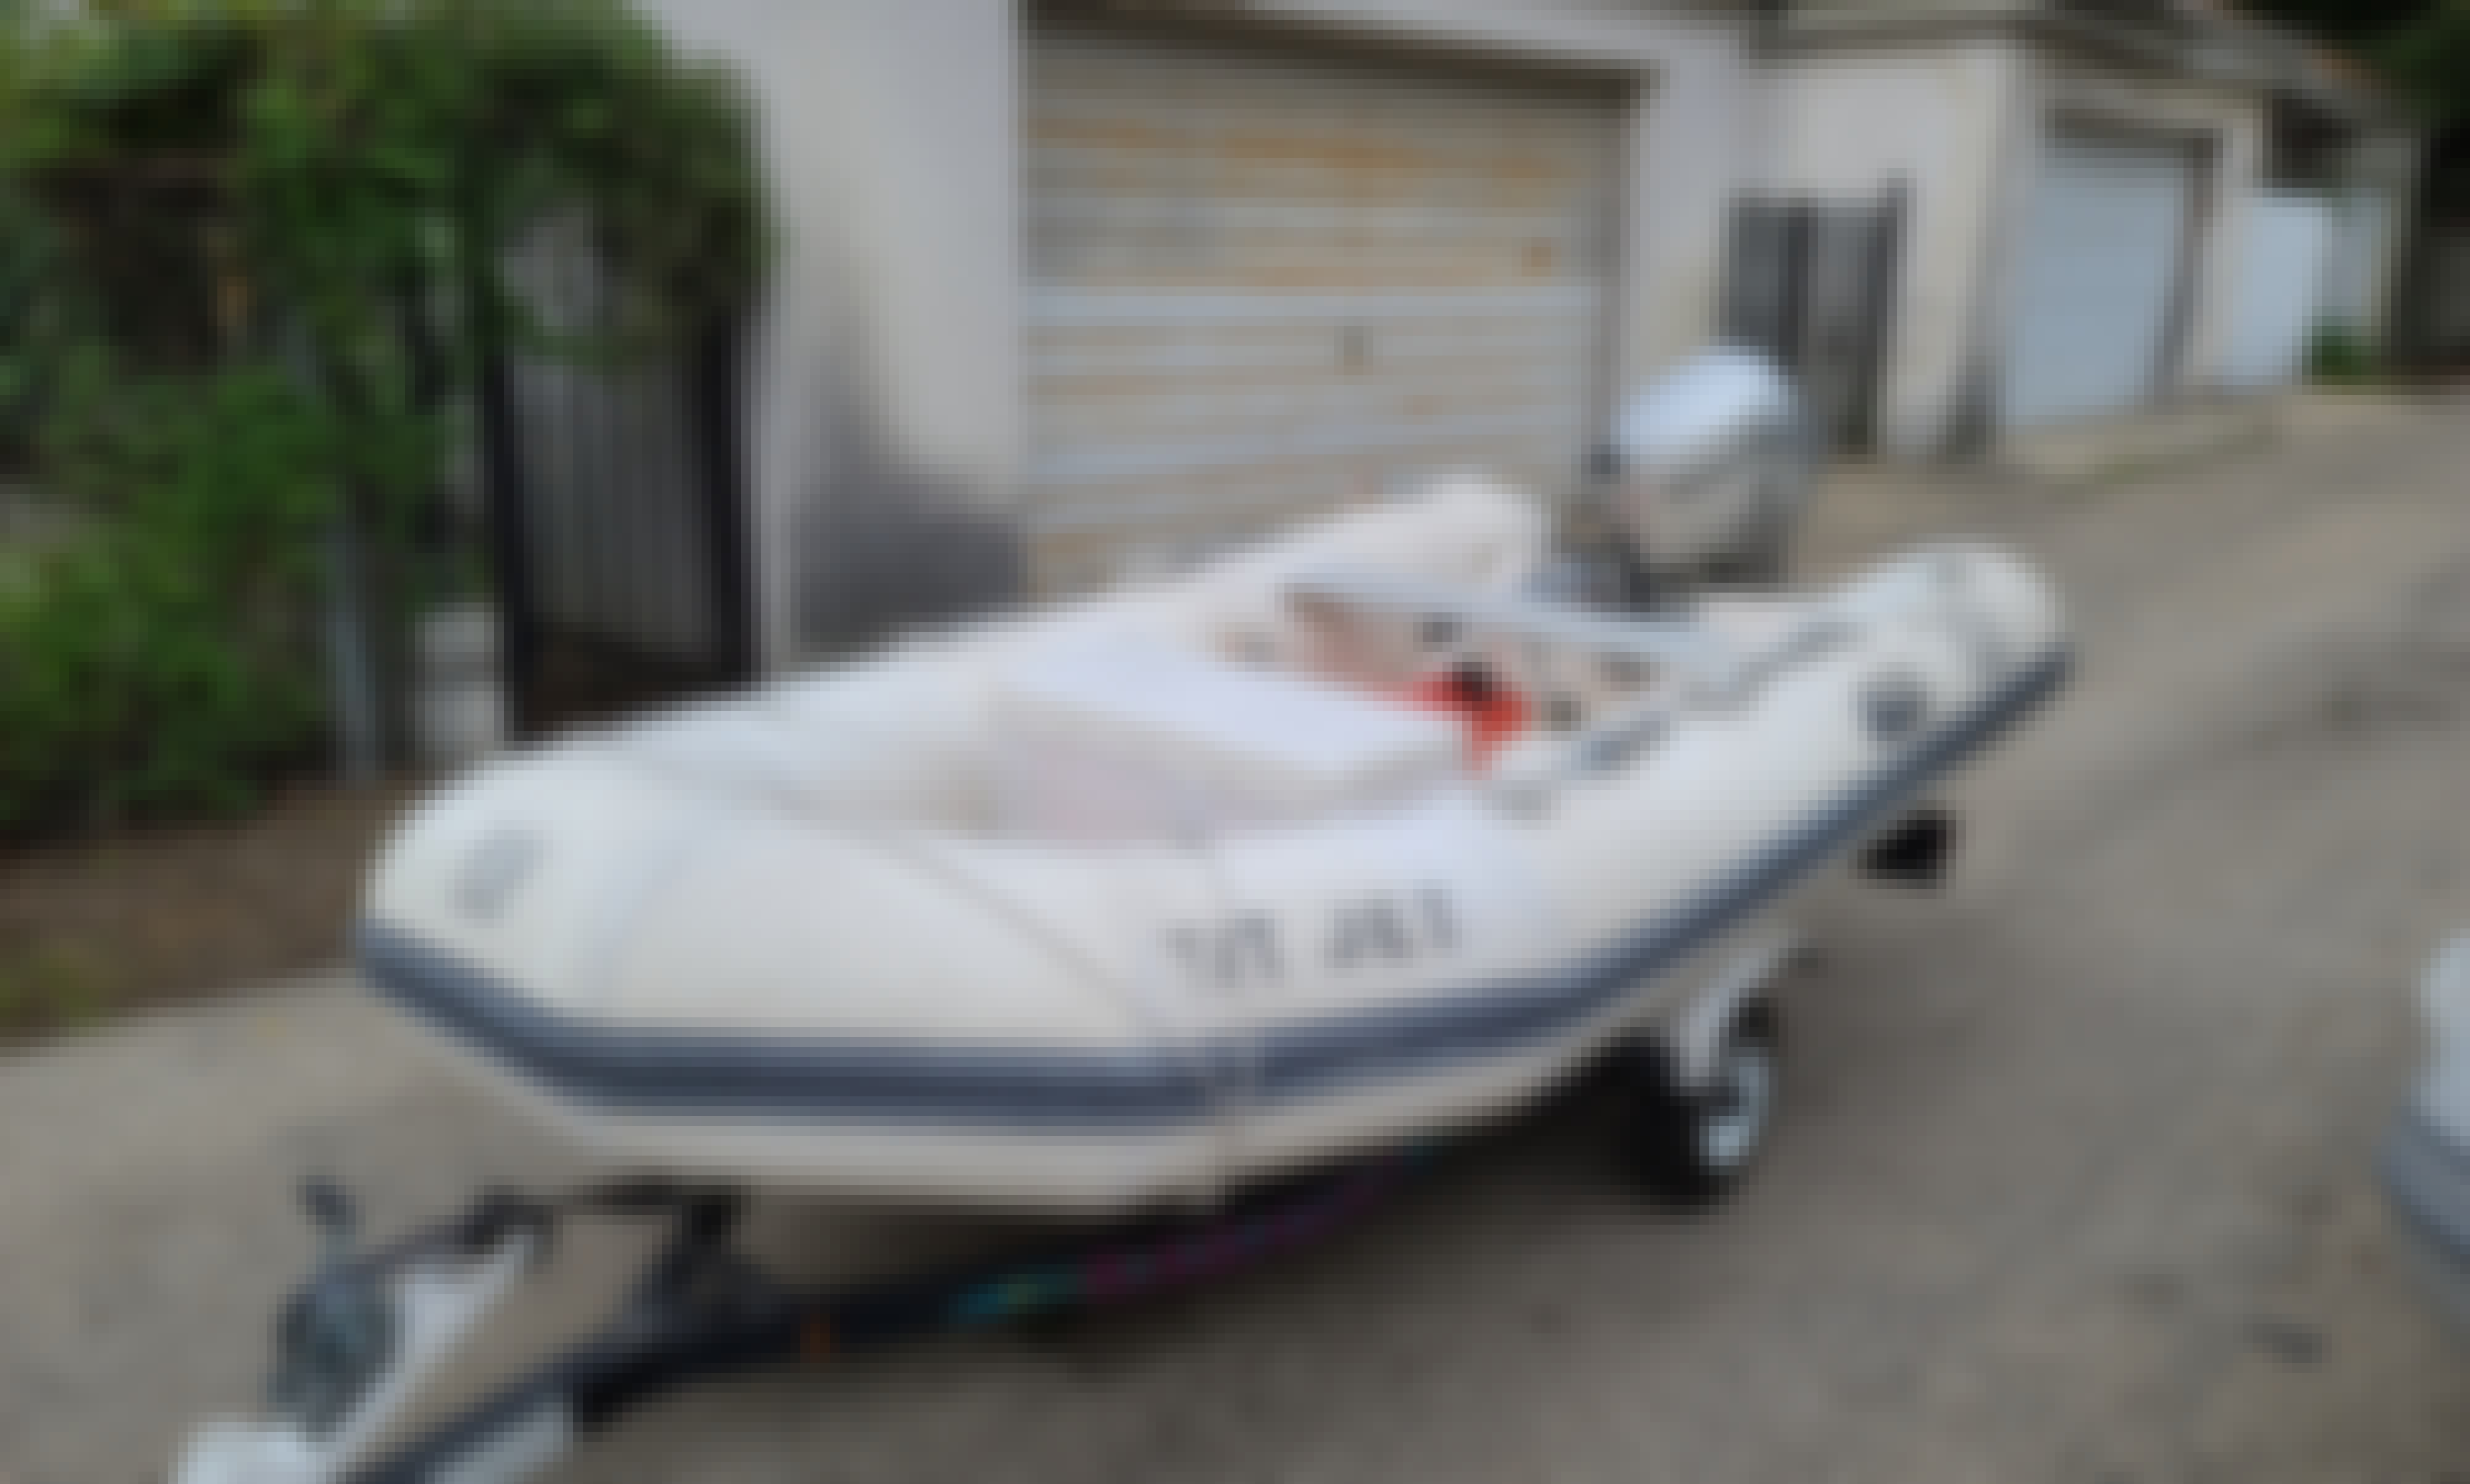 10ft Zodiac RIB Boat Rental with a 9.9HP Honda 4 Stroke Outboard in Chicago!